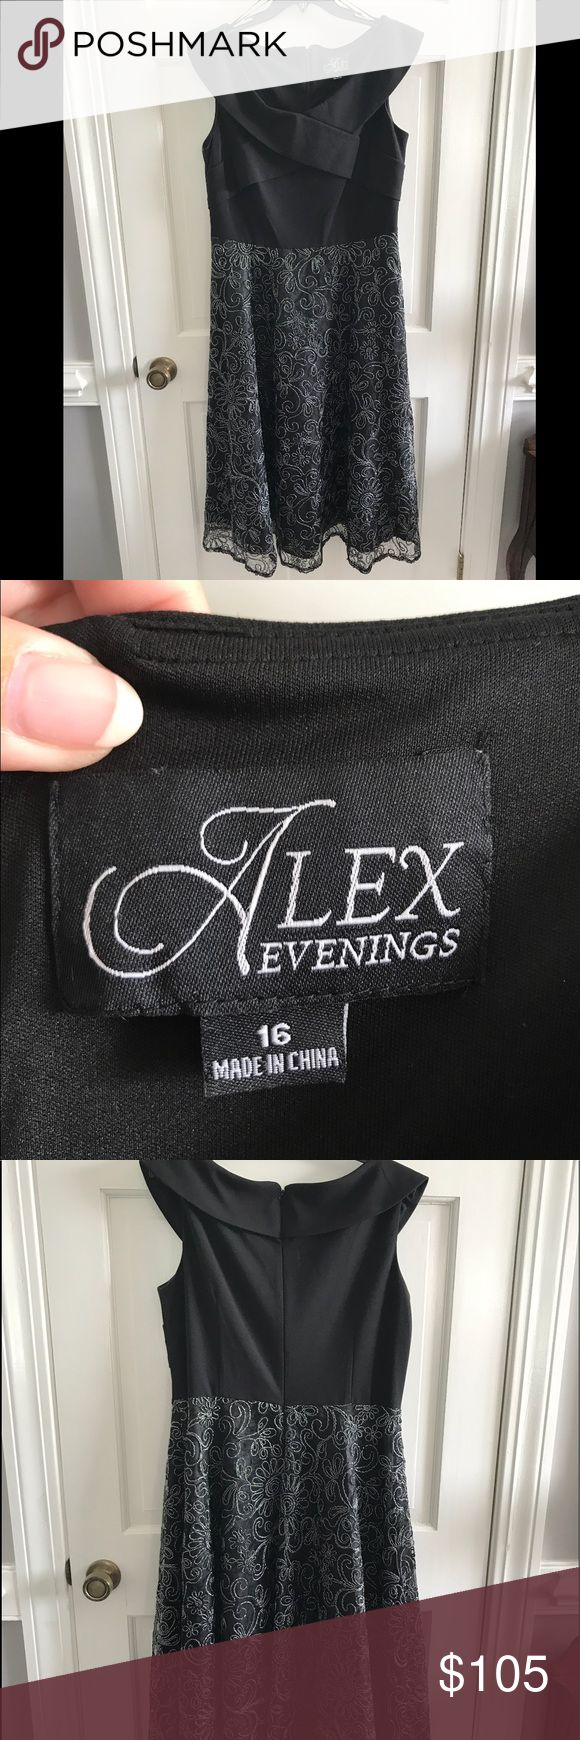 Black Tea Length Gown by Alex Evenings, Size 16 Black Tea Length Gown by Alex Evenings, Size 16 - beautiful silver beading, portrait neckline. This is a gorgeous dress - very elegant. Worn once. Alex Evenings Dresses Prom